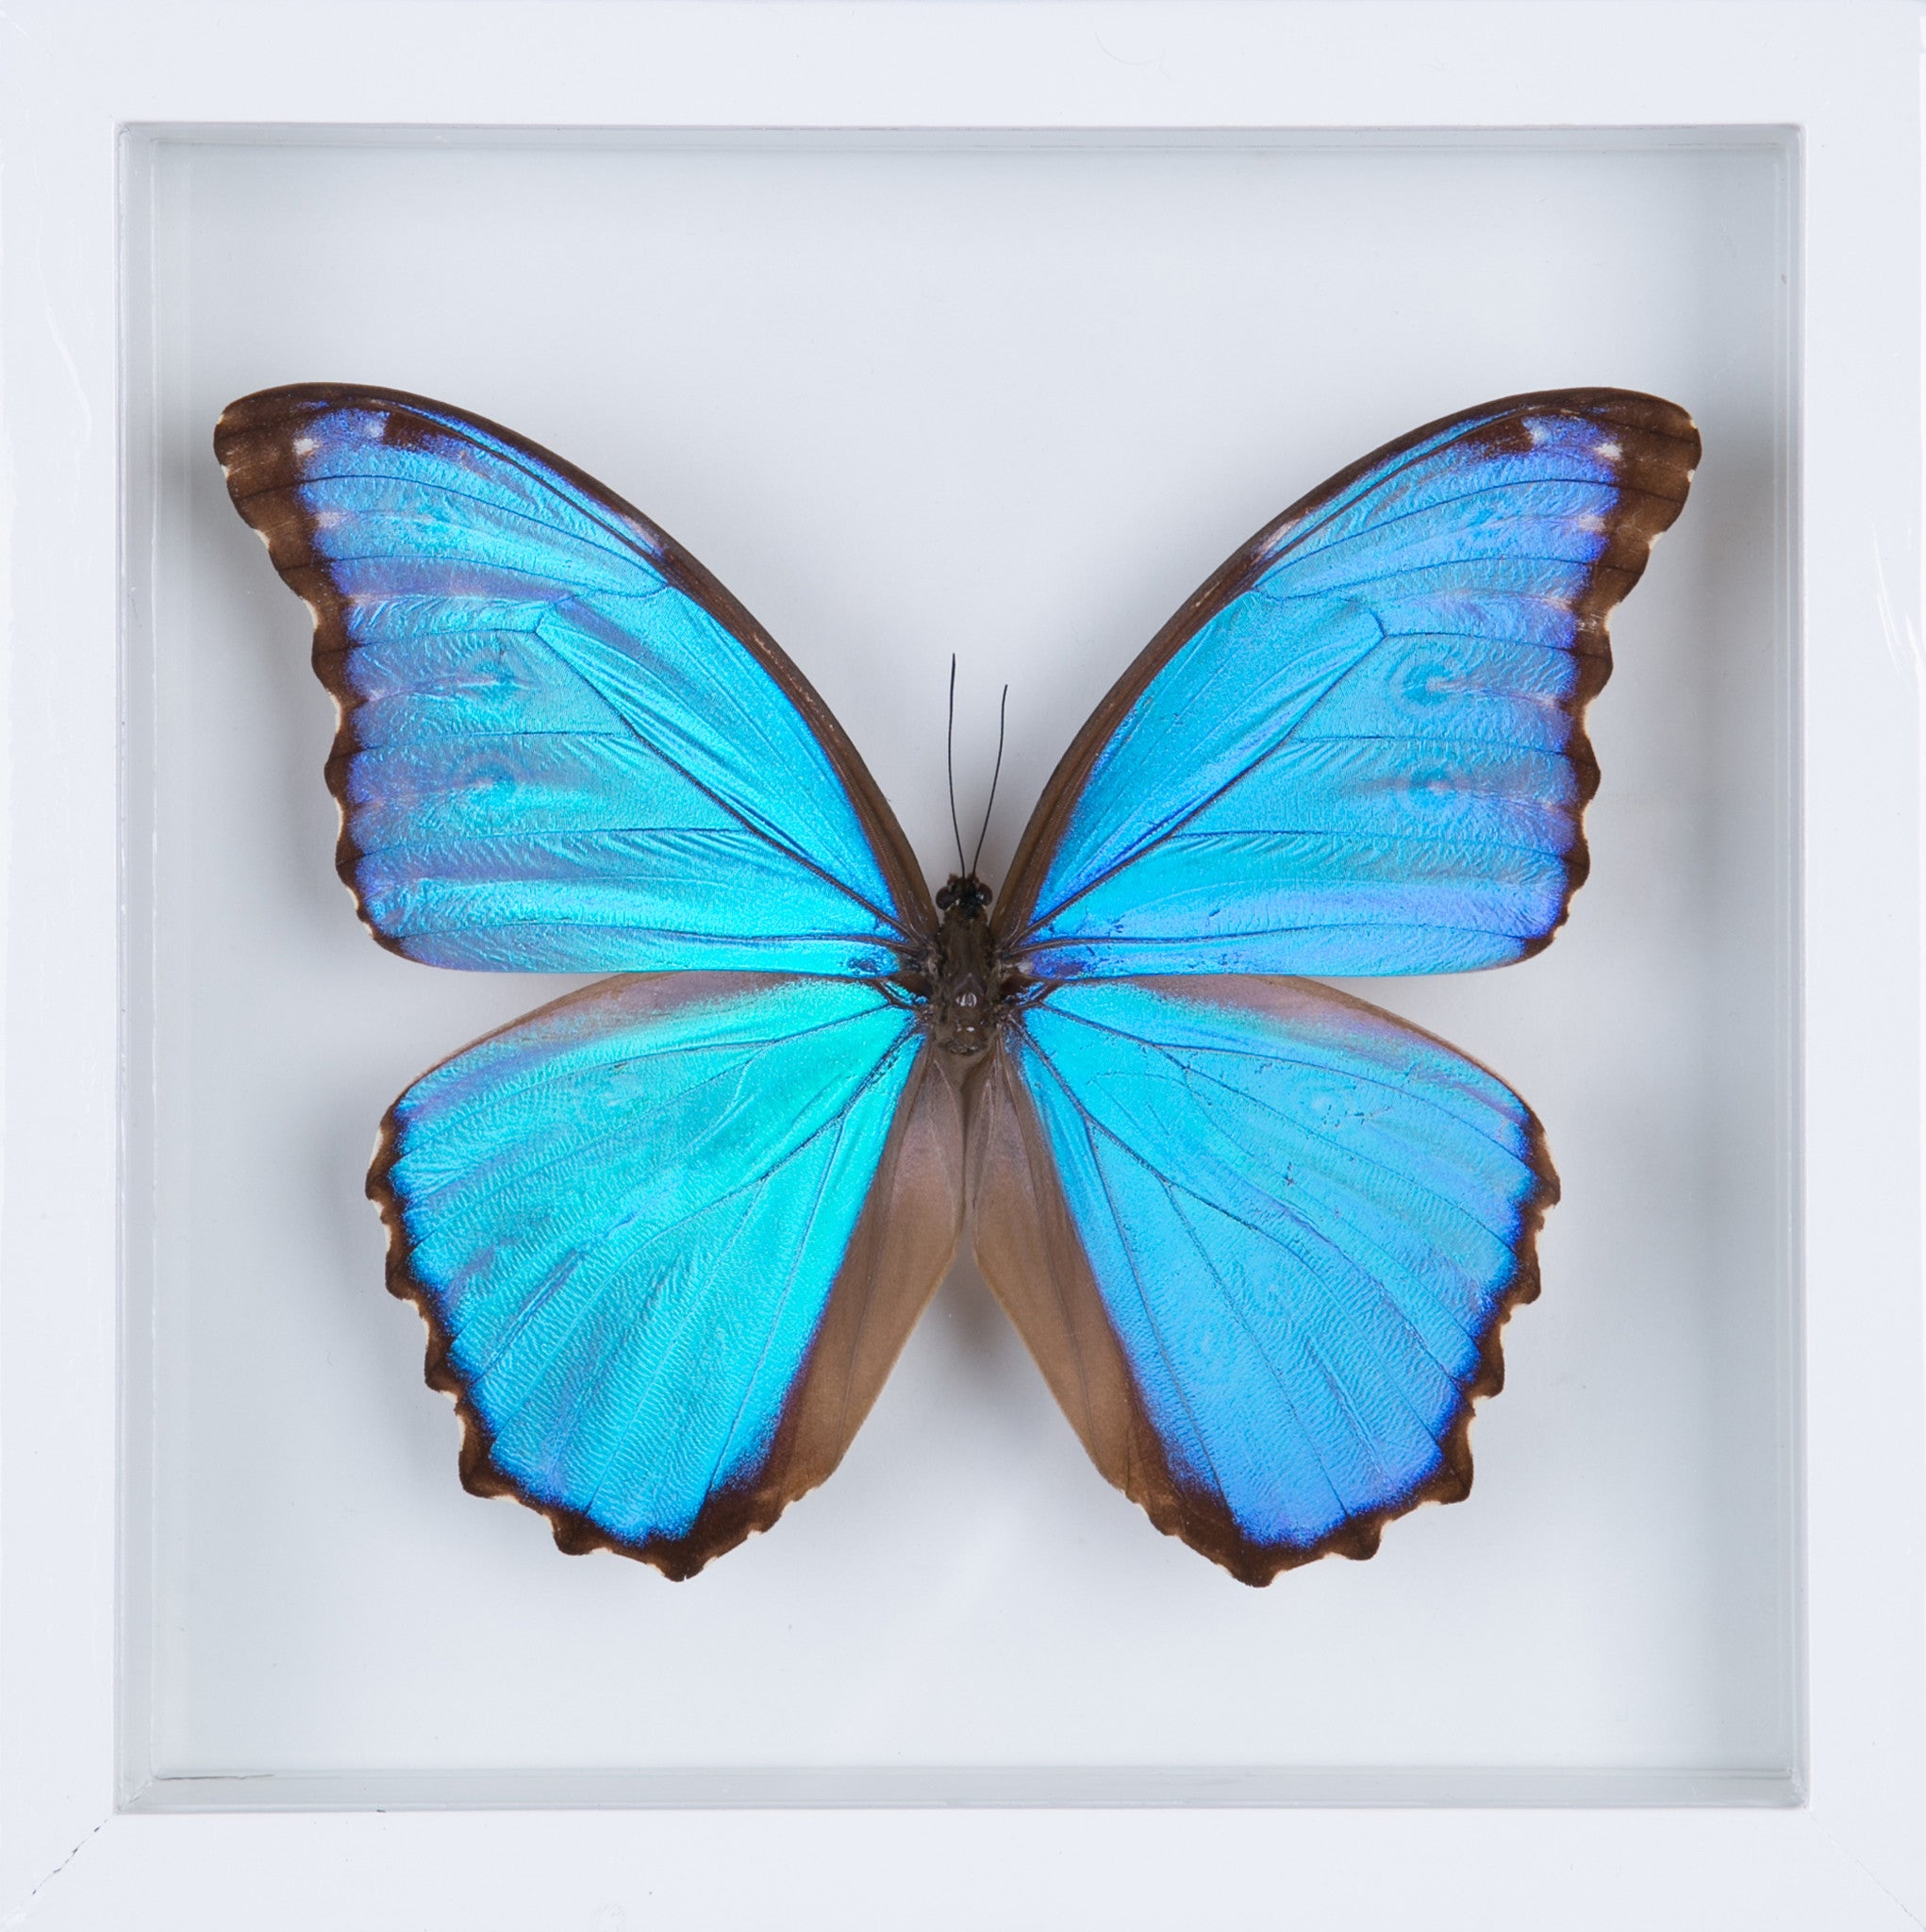 the giant blue morpho butterfly framed butterfly see through glass frame natural history